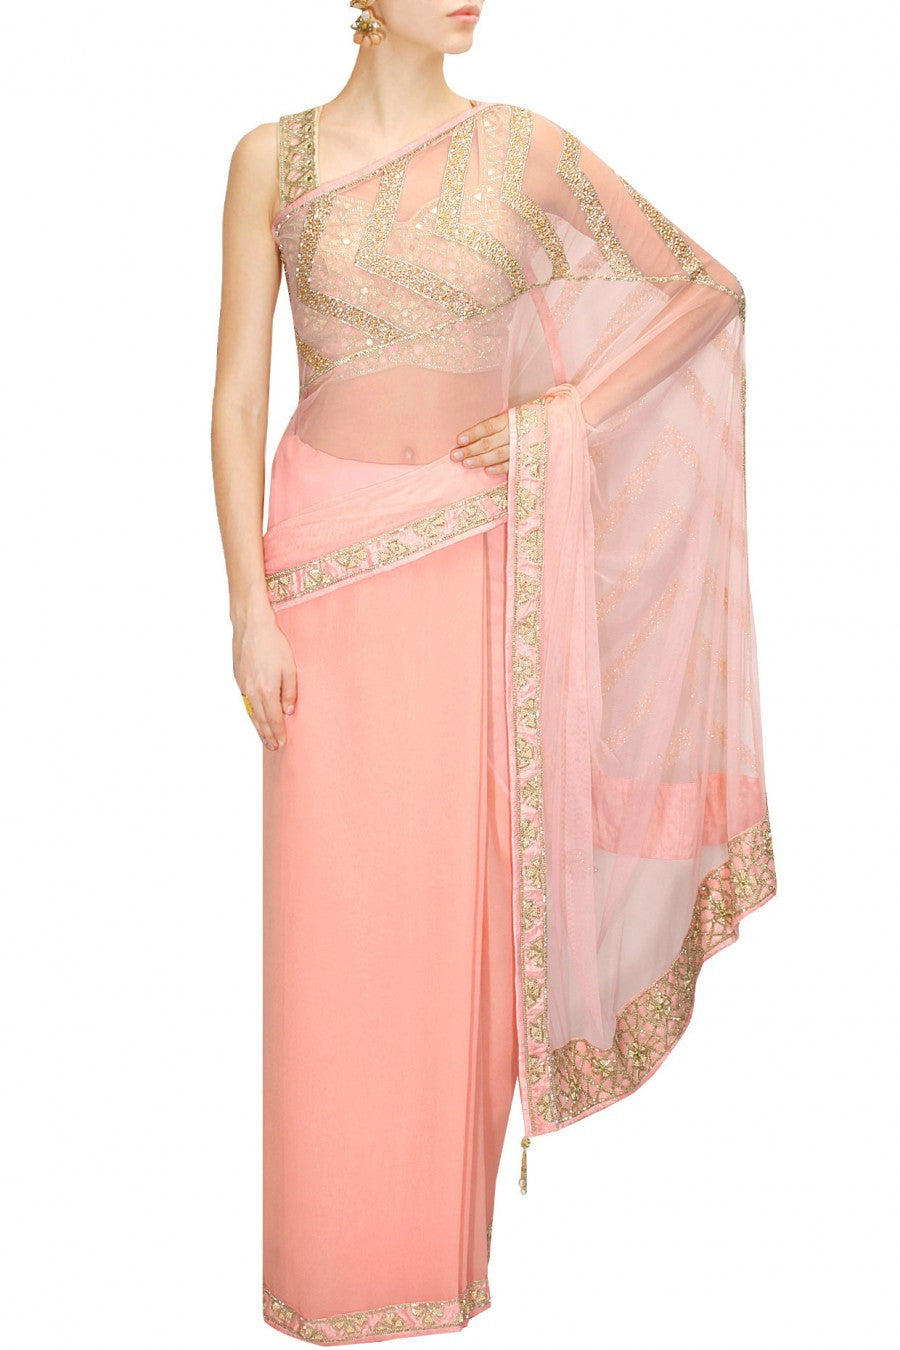 Peach designer sari with cut work blouse